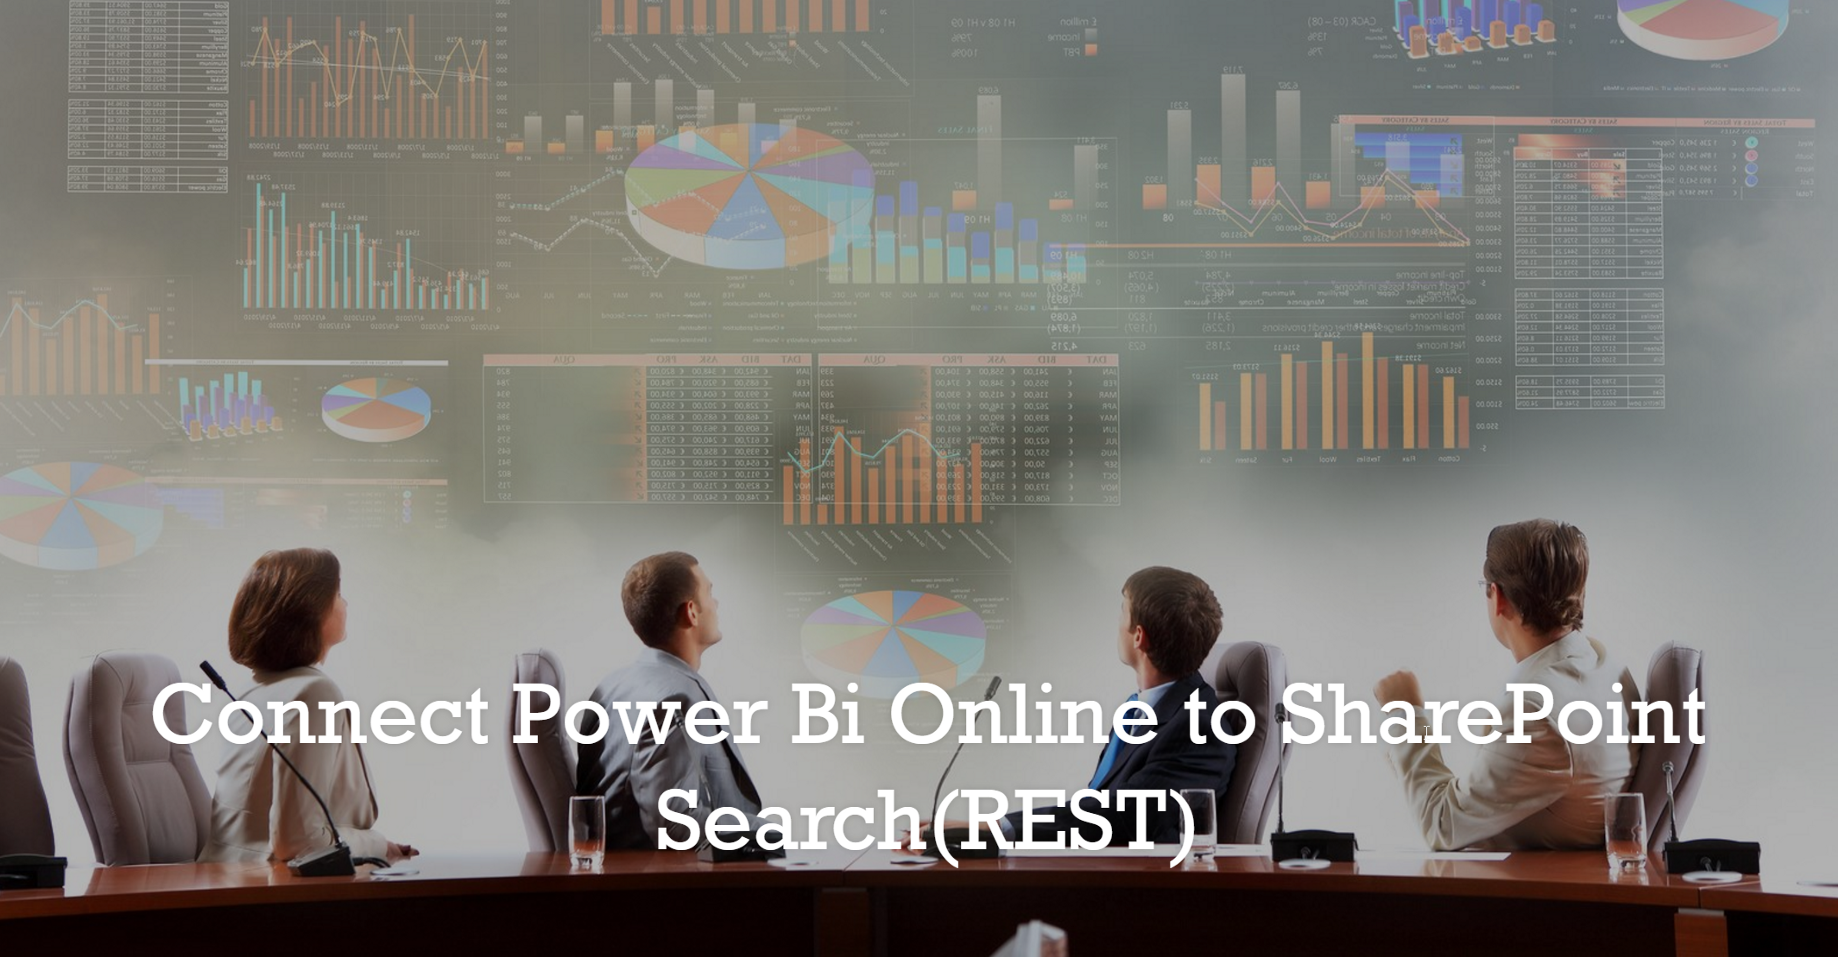 Connect Power Bi Online to SharePoint Search using REST